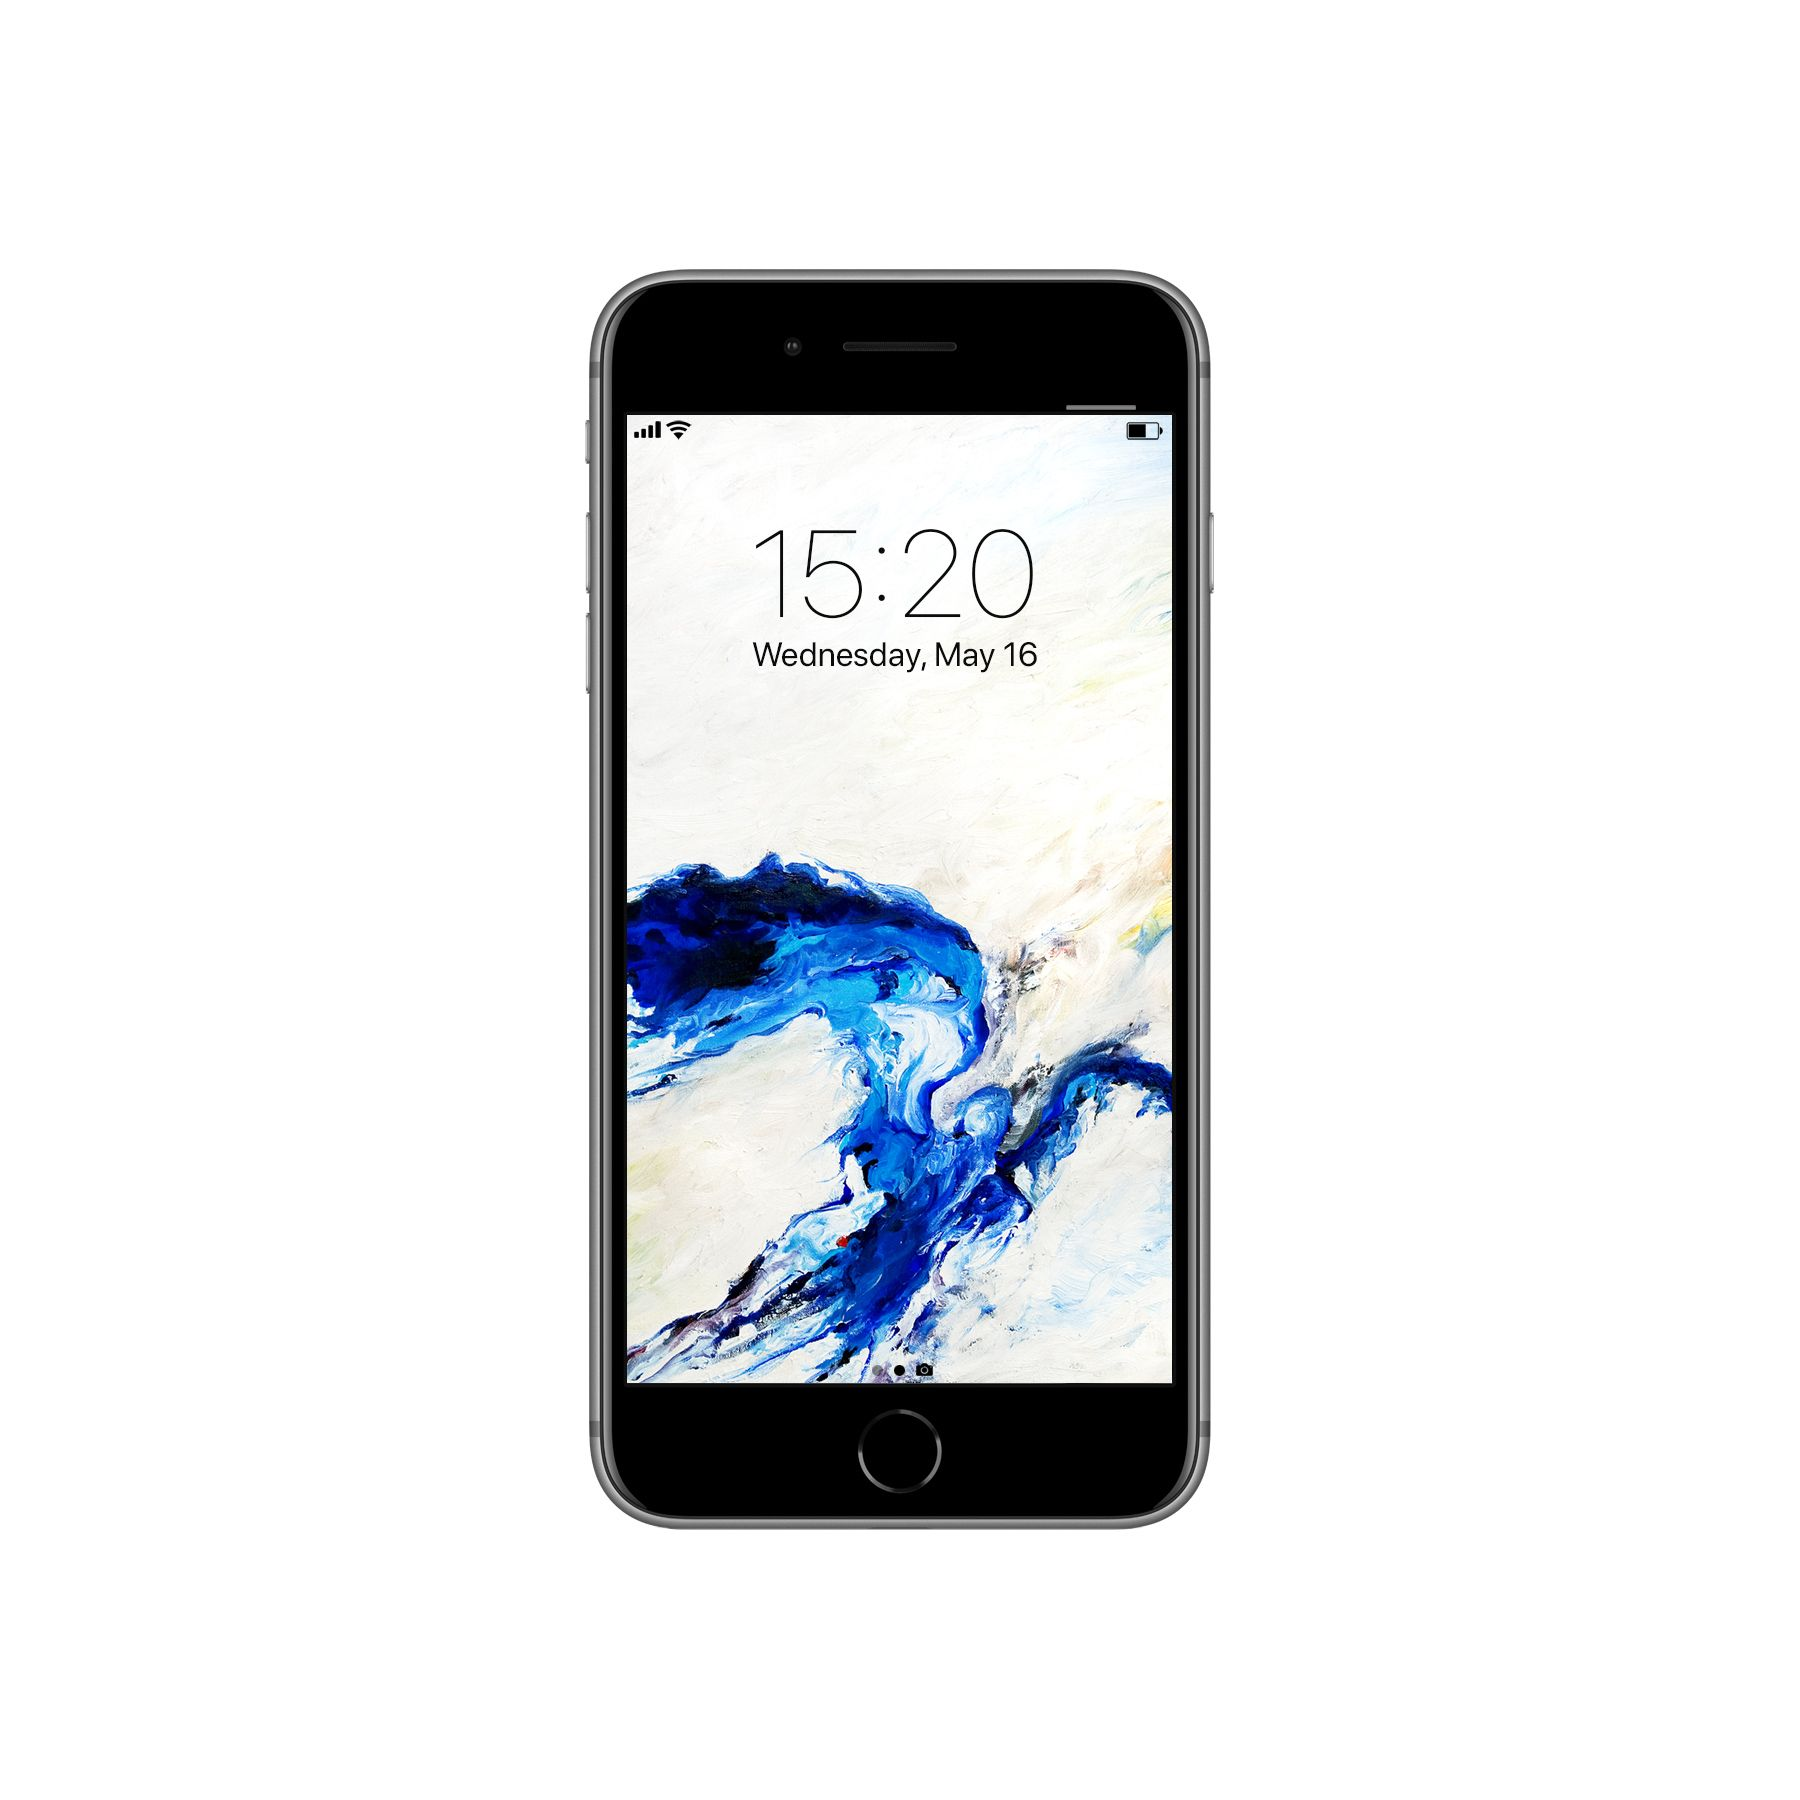 Abstract Painting Wallpaper For IPhone 7 And